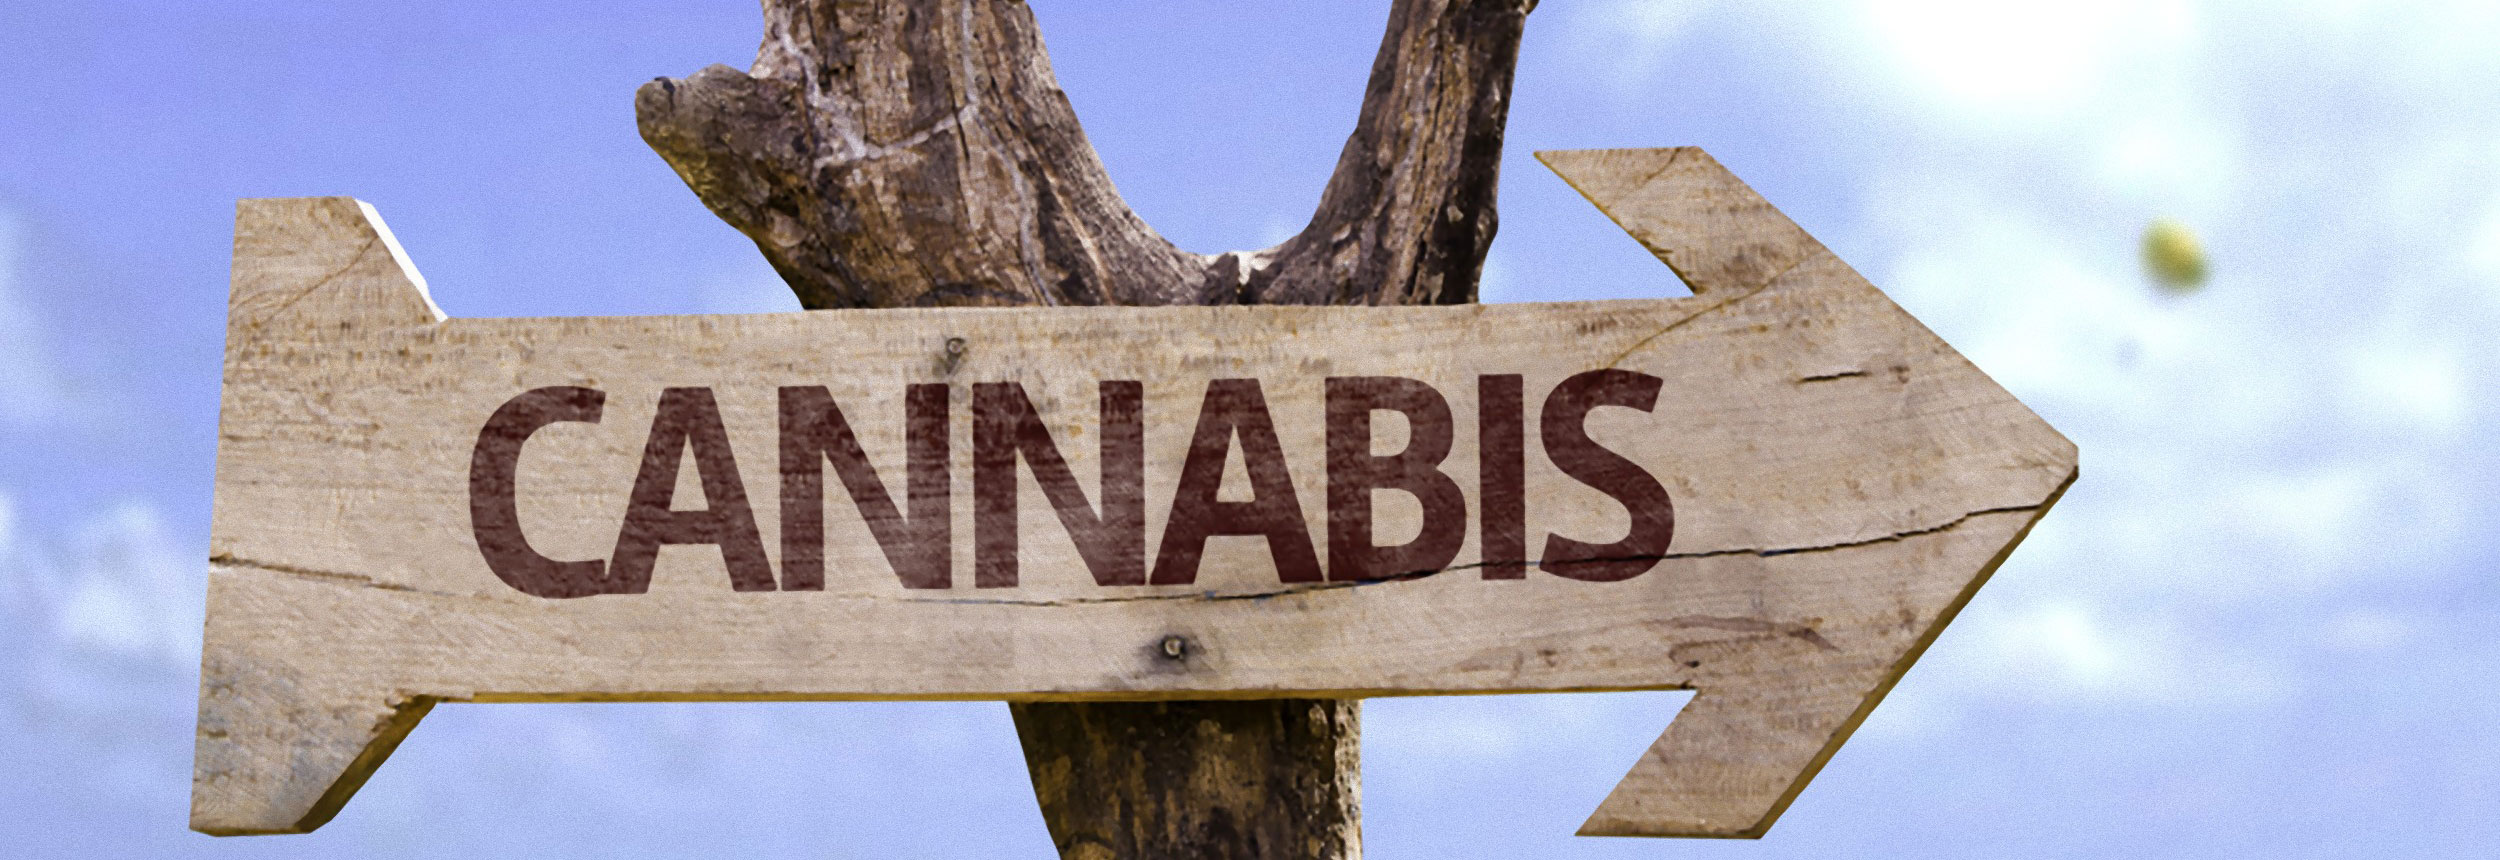 Buy Discount Cannabis Seeds online - Buy the Best Weed online in the UK - Cheap Cannabis Seeds - Free Seeds with every order